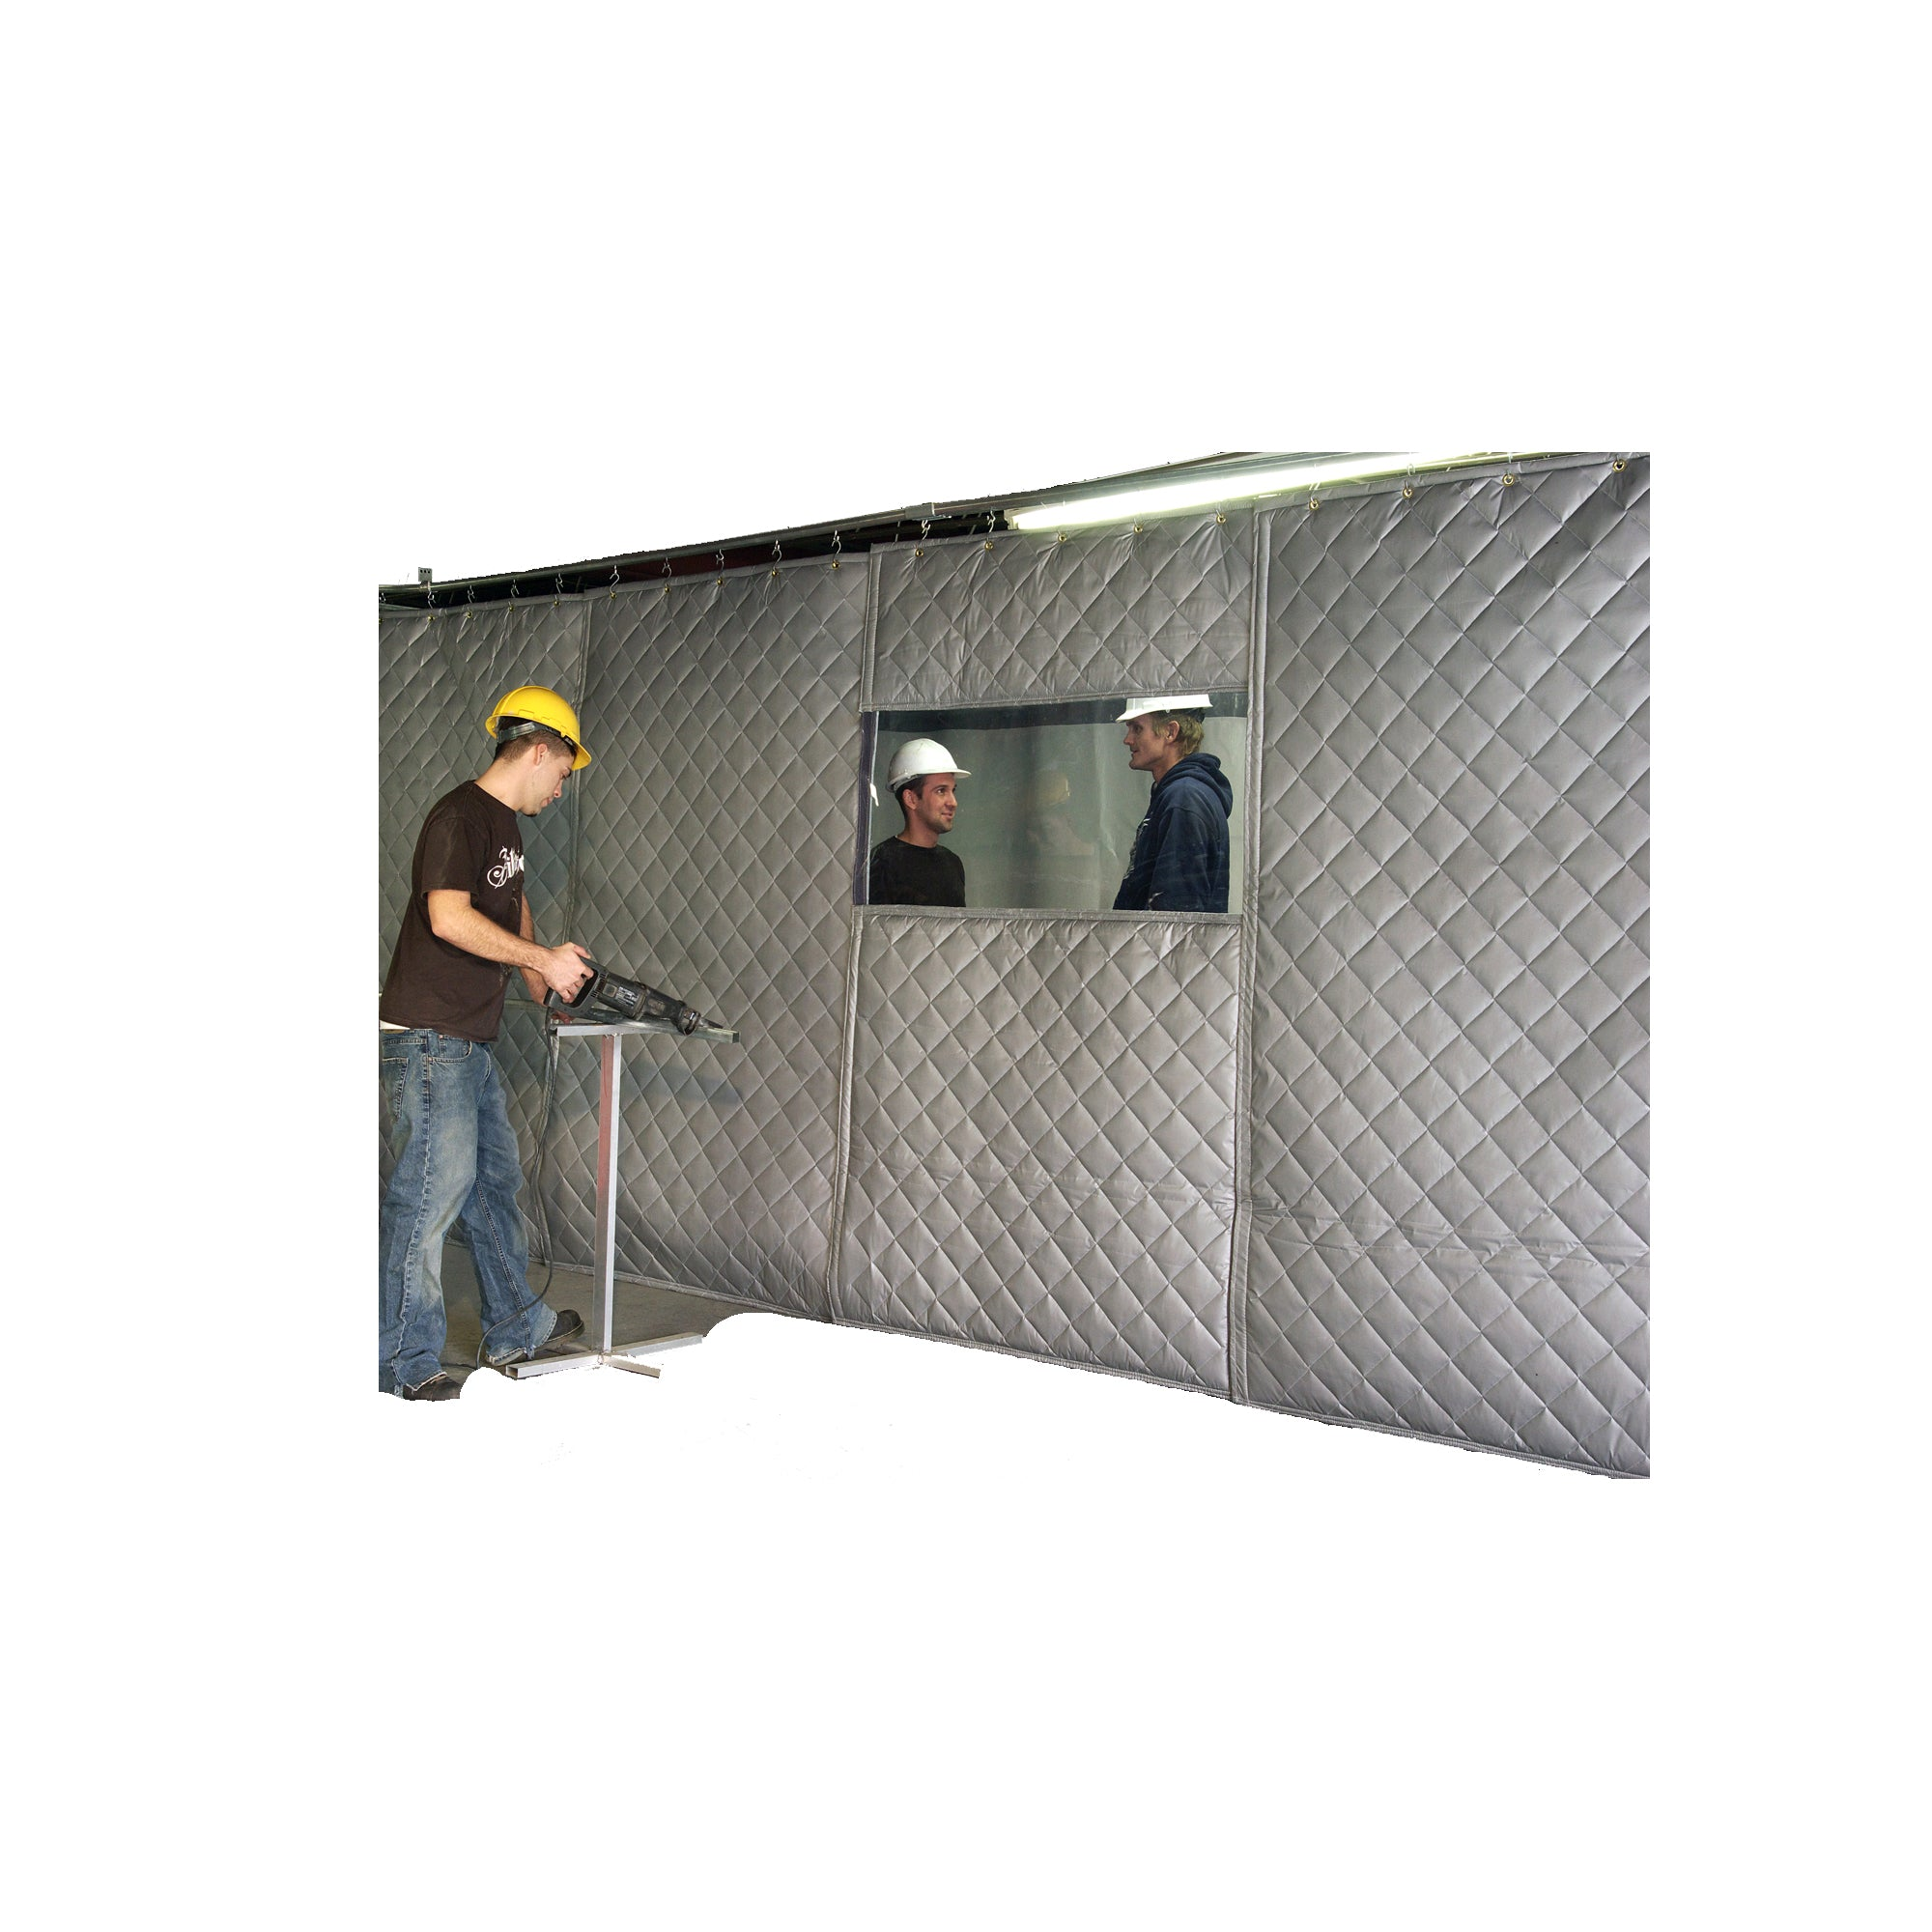 Industrial Soundproof Curtains for Noise Control